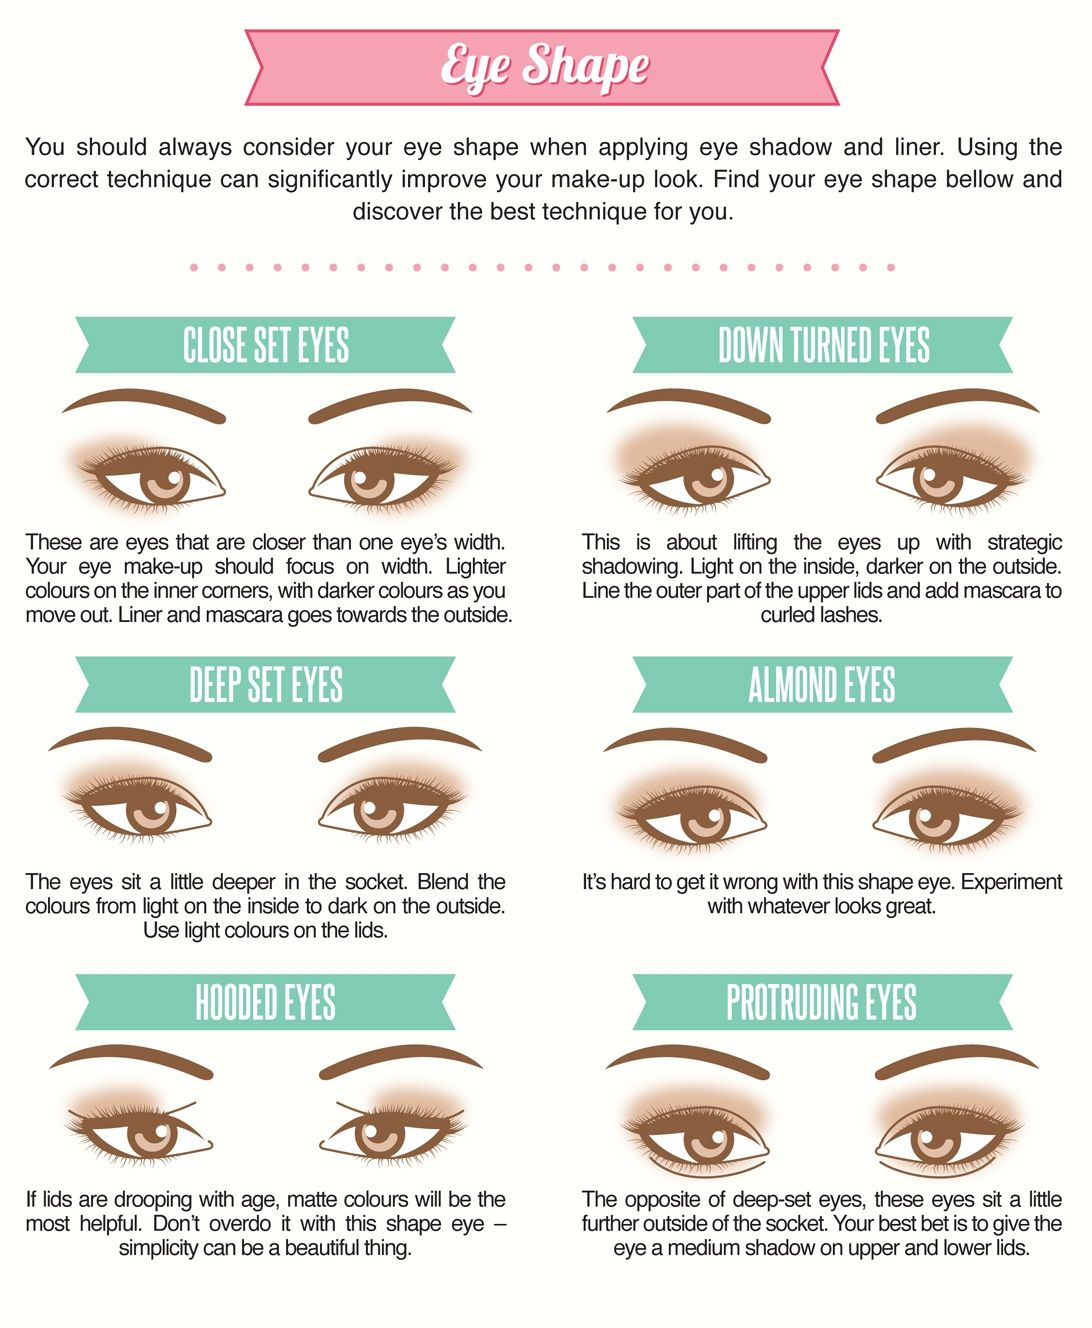 Eye shape and makeup